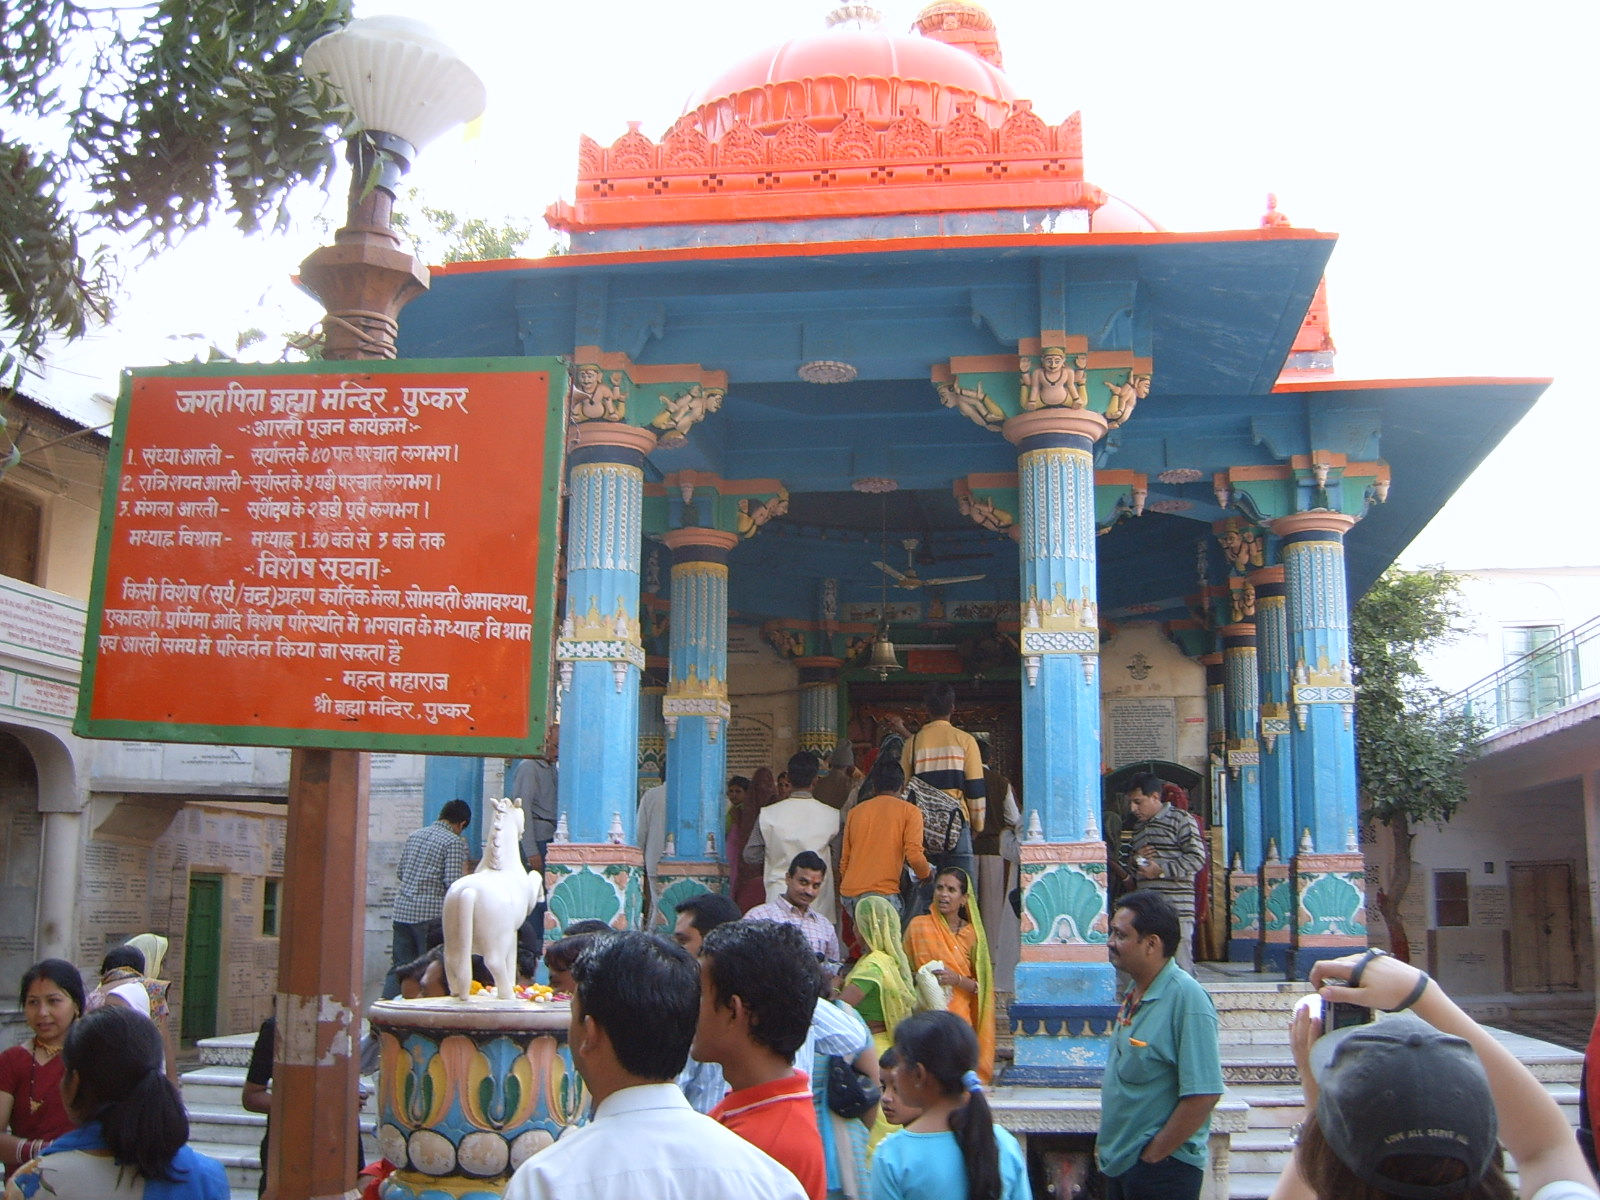 Puskar Brahma temple - don't accept flowers from anyone inside the temple unless you want to be ripped off!